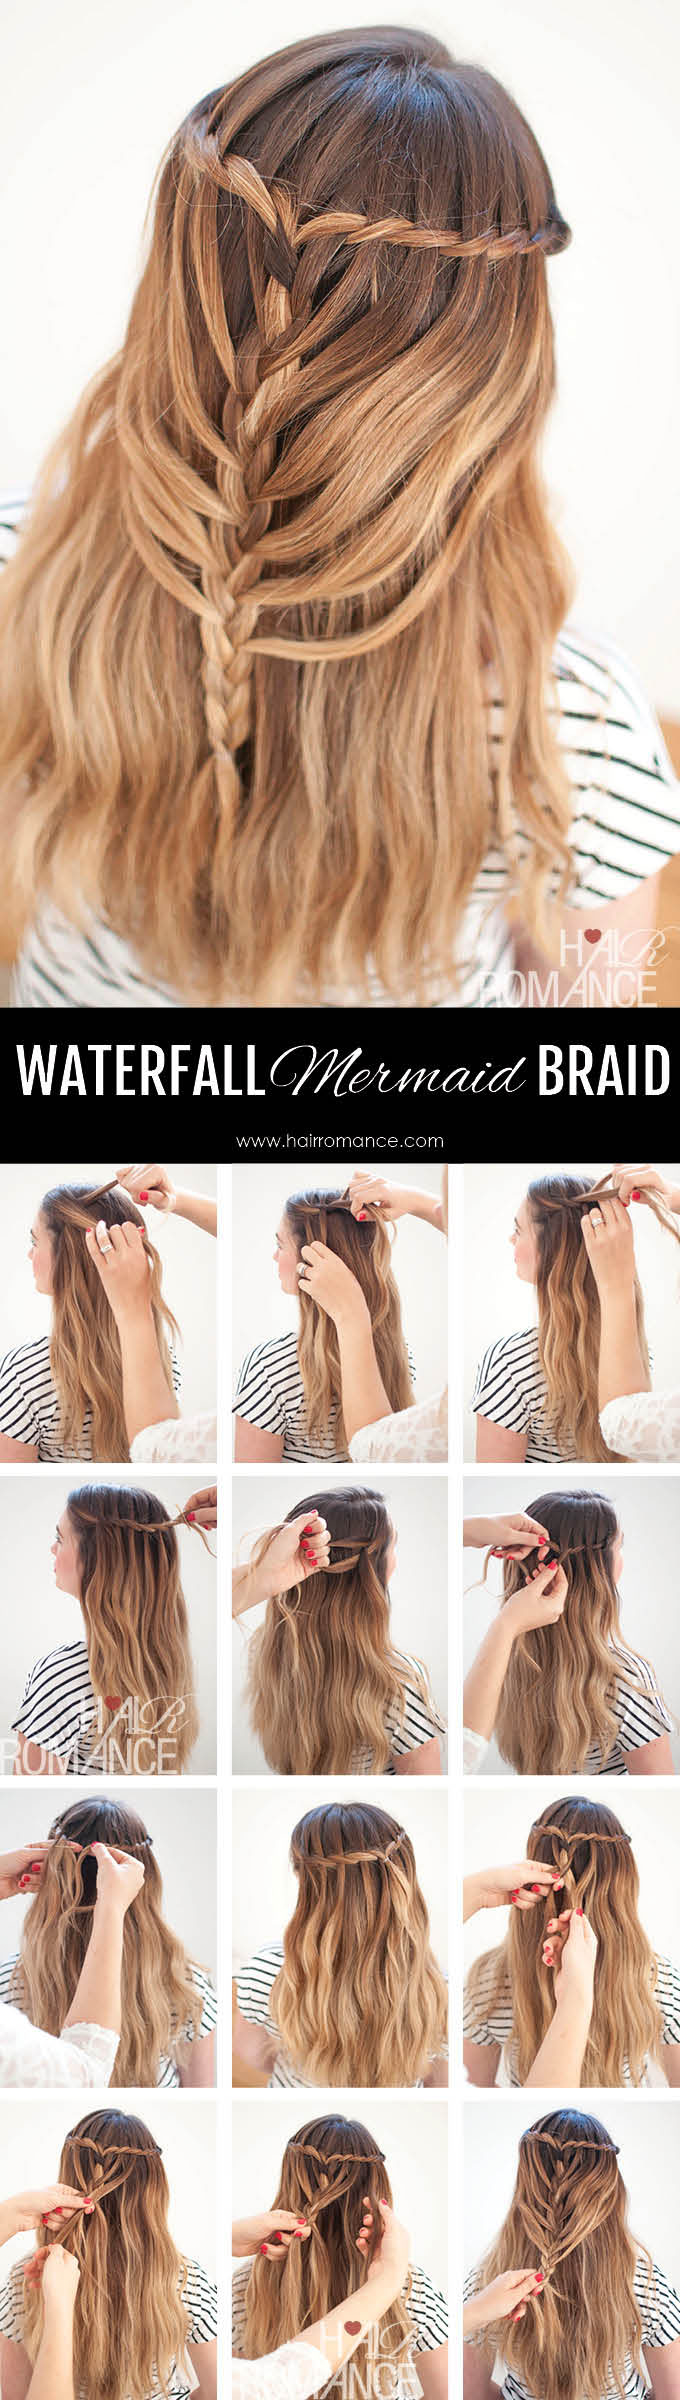 Hair Romance - Waterfall Mermaid Braid Tutorial for Long Hair